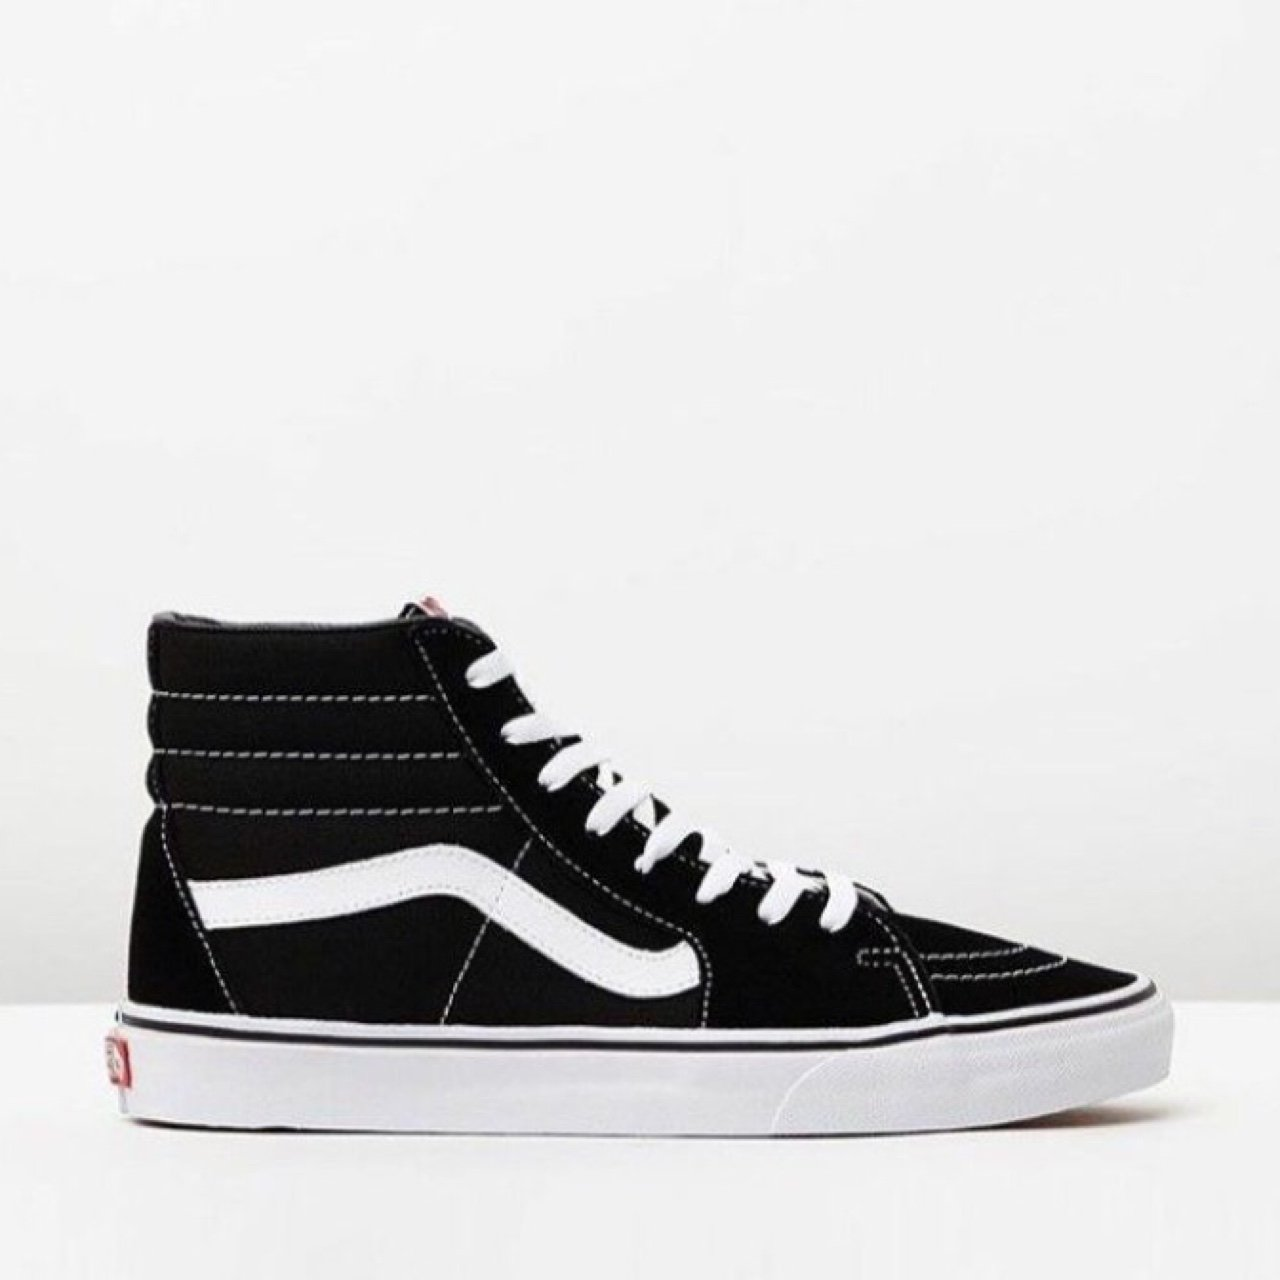 vans old skool alte